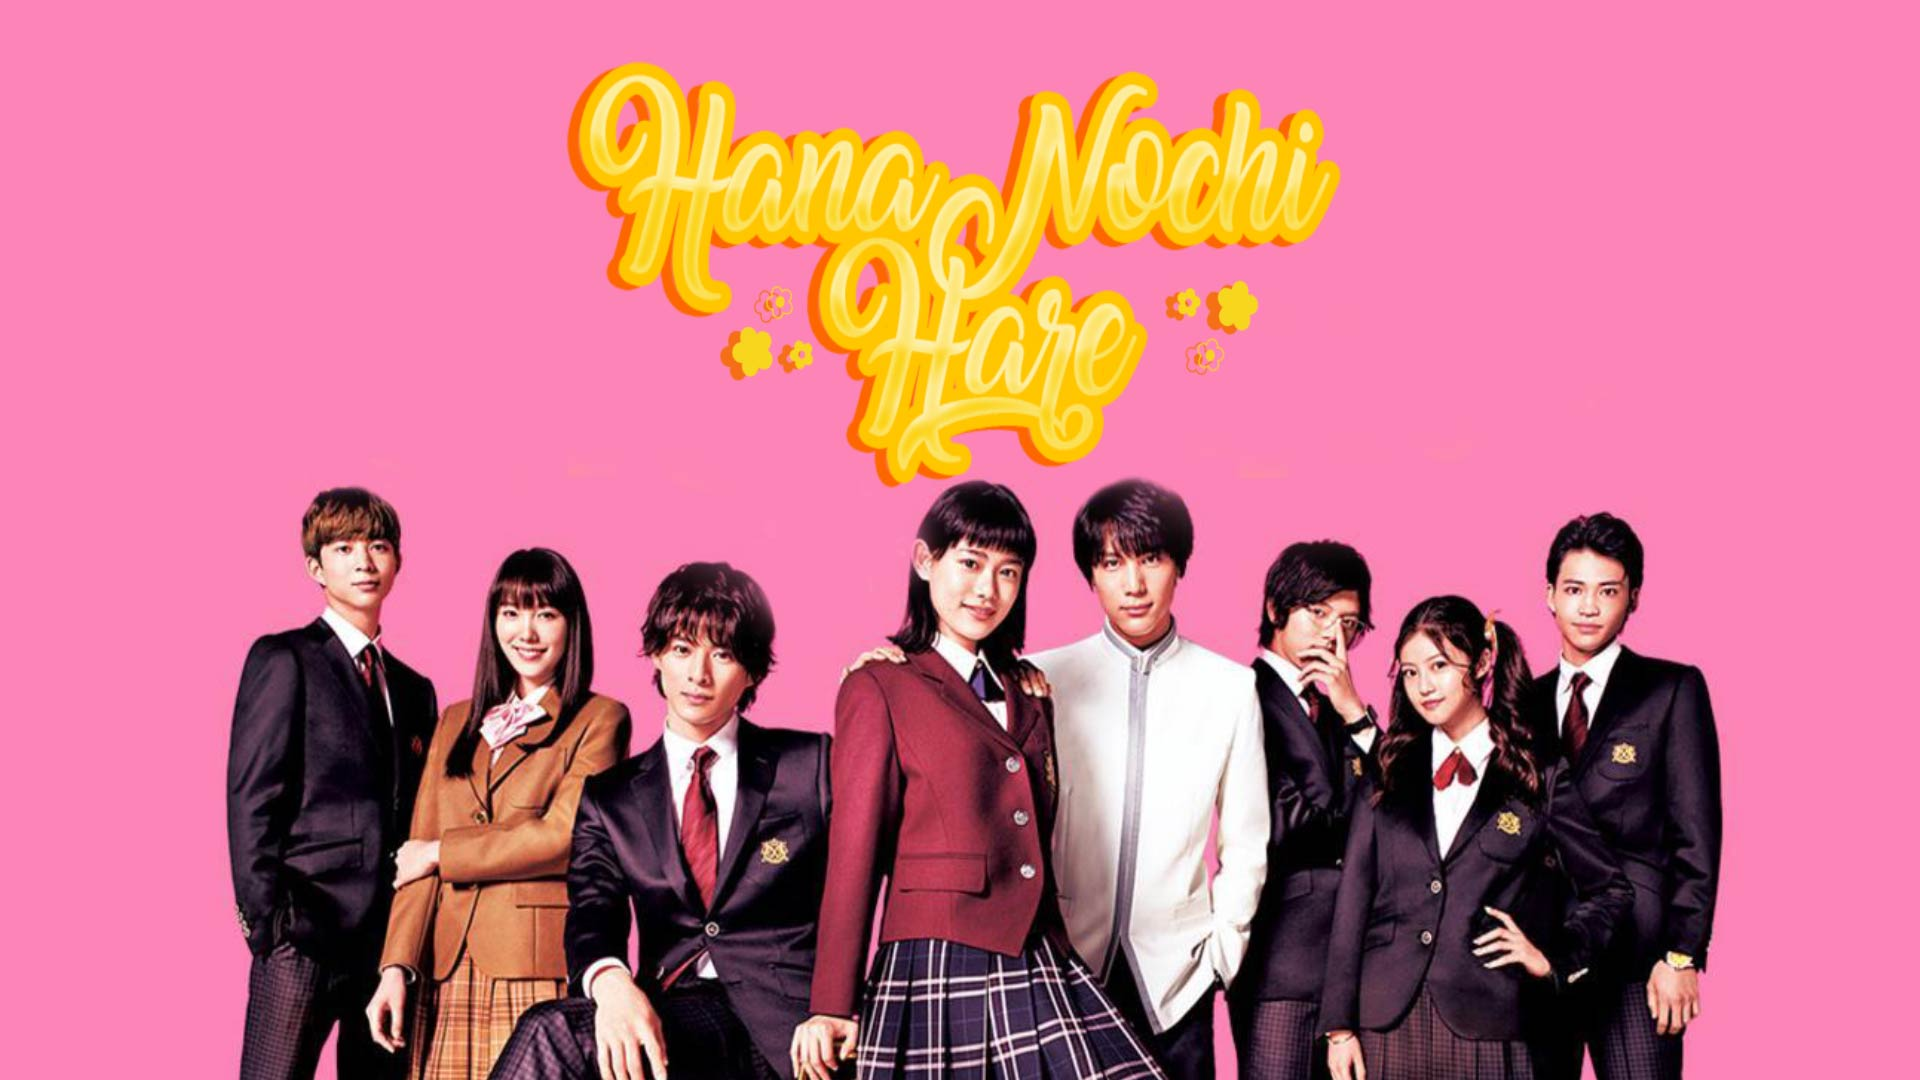 """Asianovela Channel to air first Japanese drama hit  """"Hana Nochi Hare"""""""